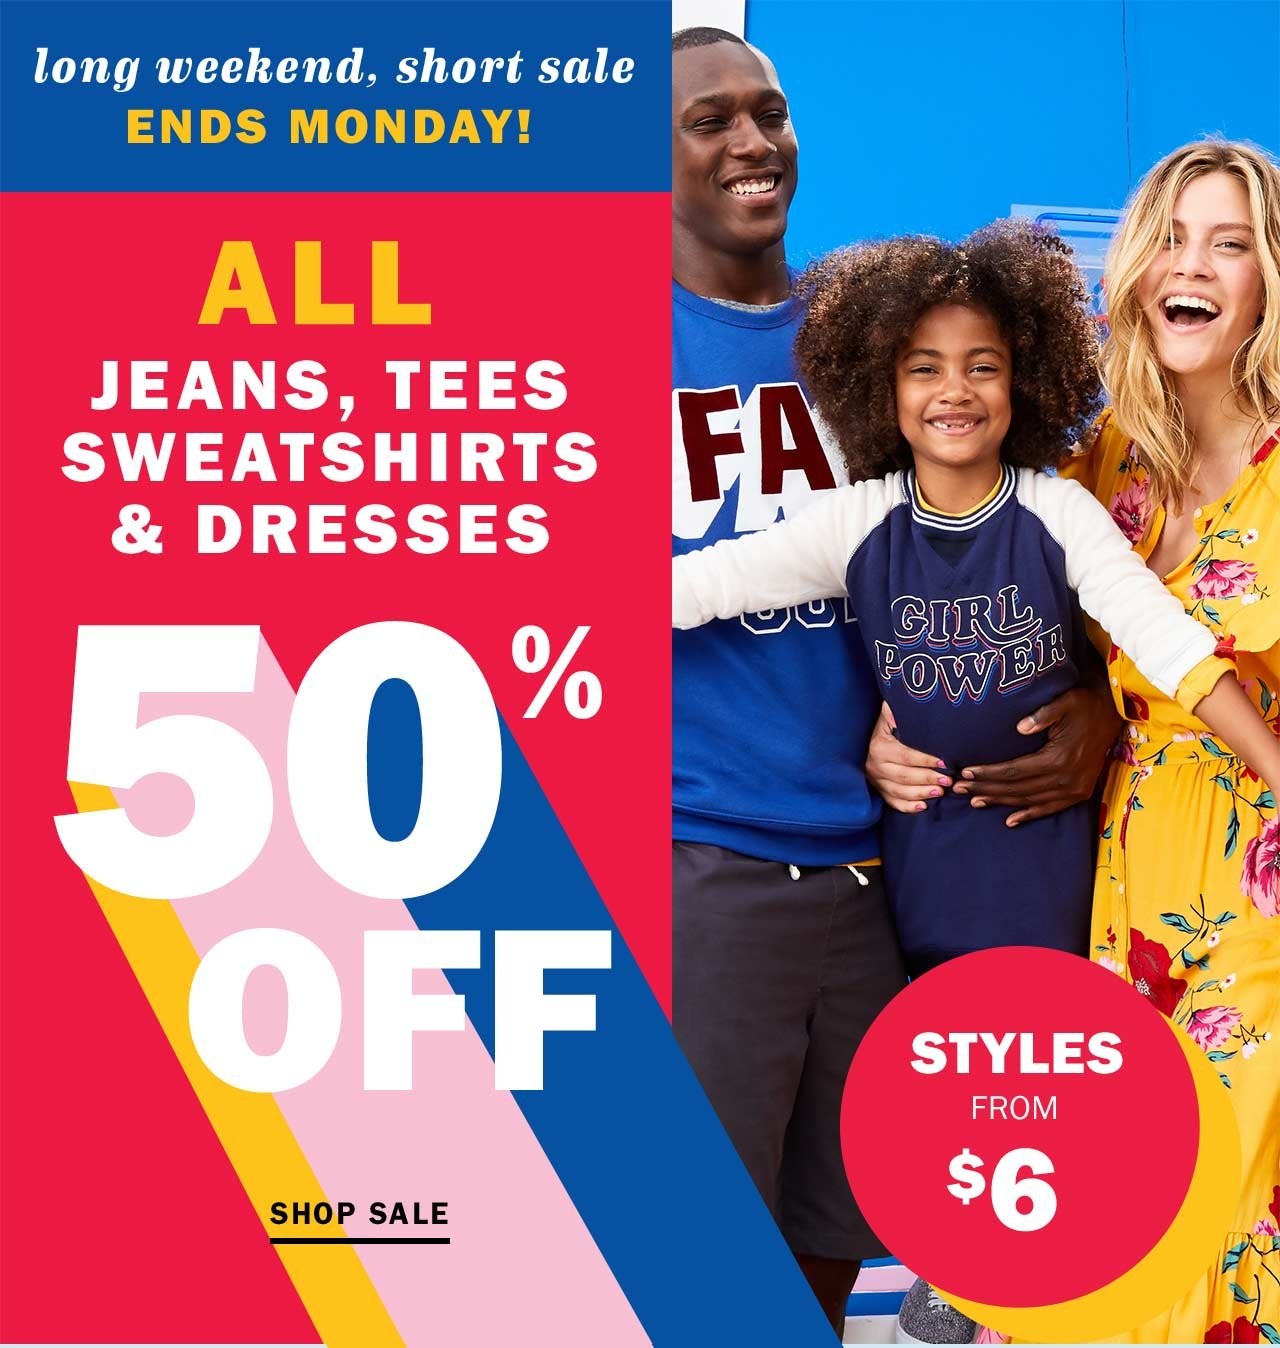 💥 L-O-N-G weekend = EPIC Labor Day sale 💥 - Old Navy Email Archive